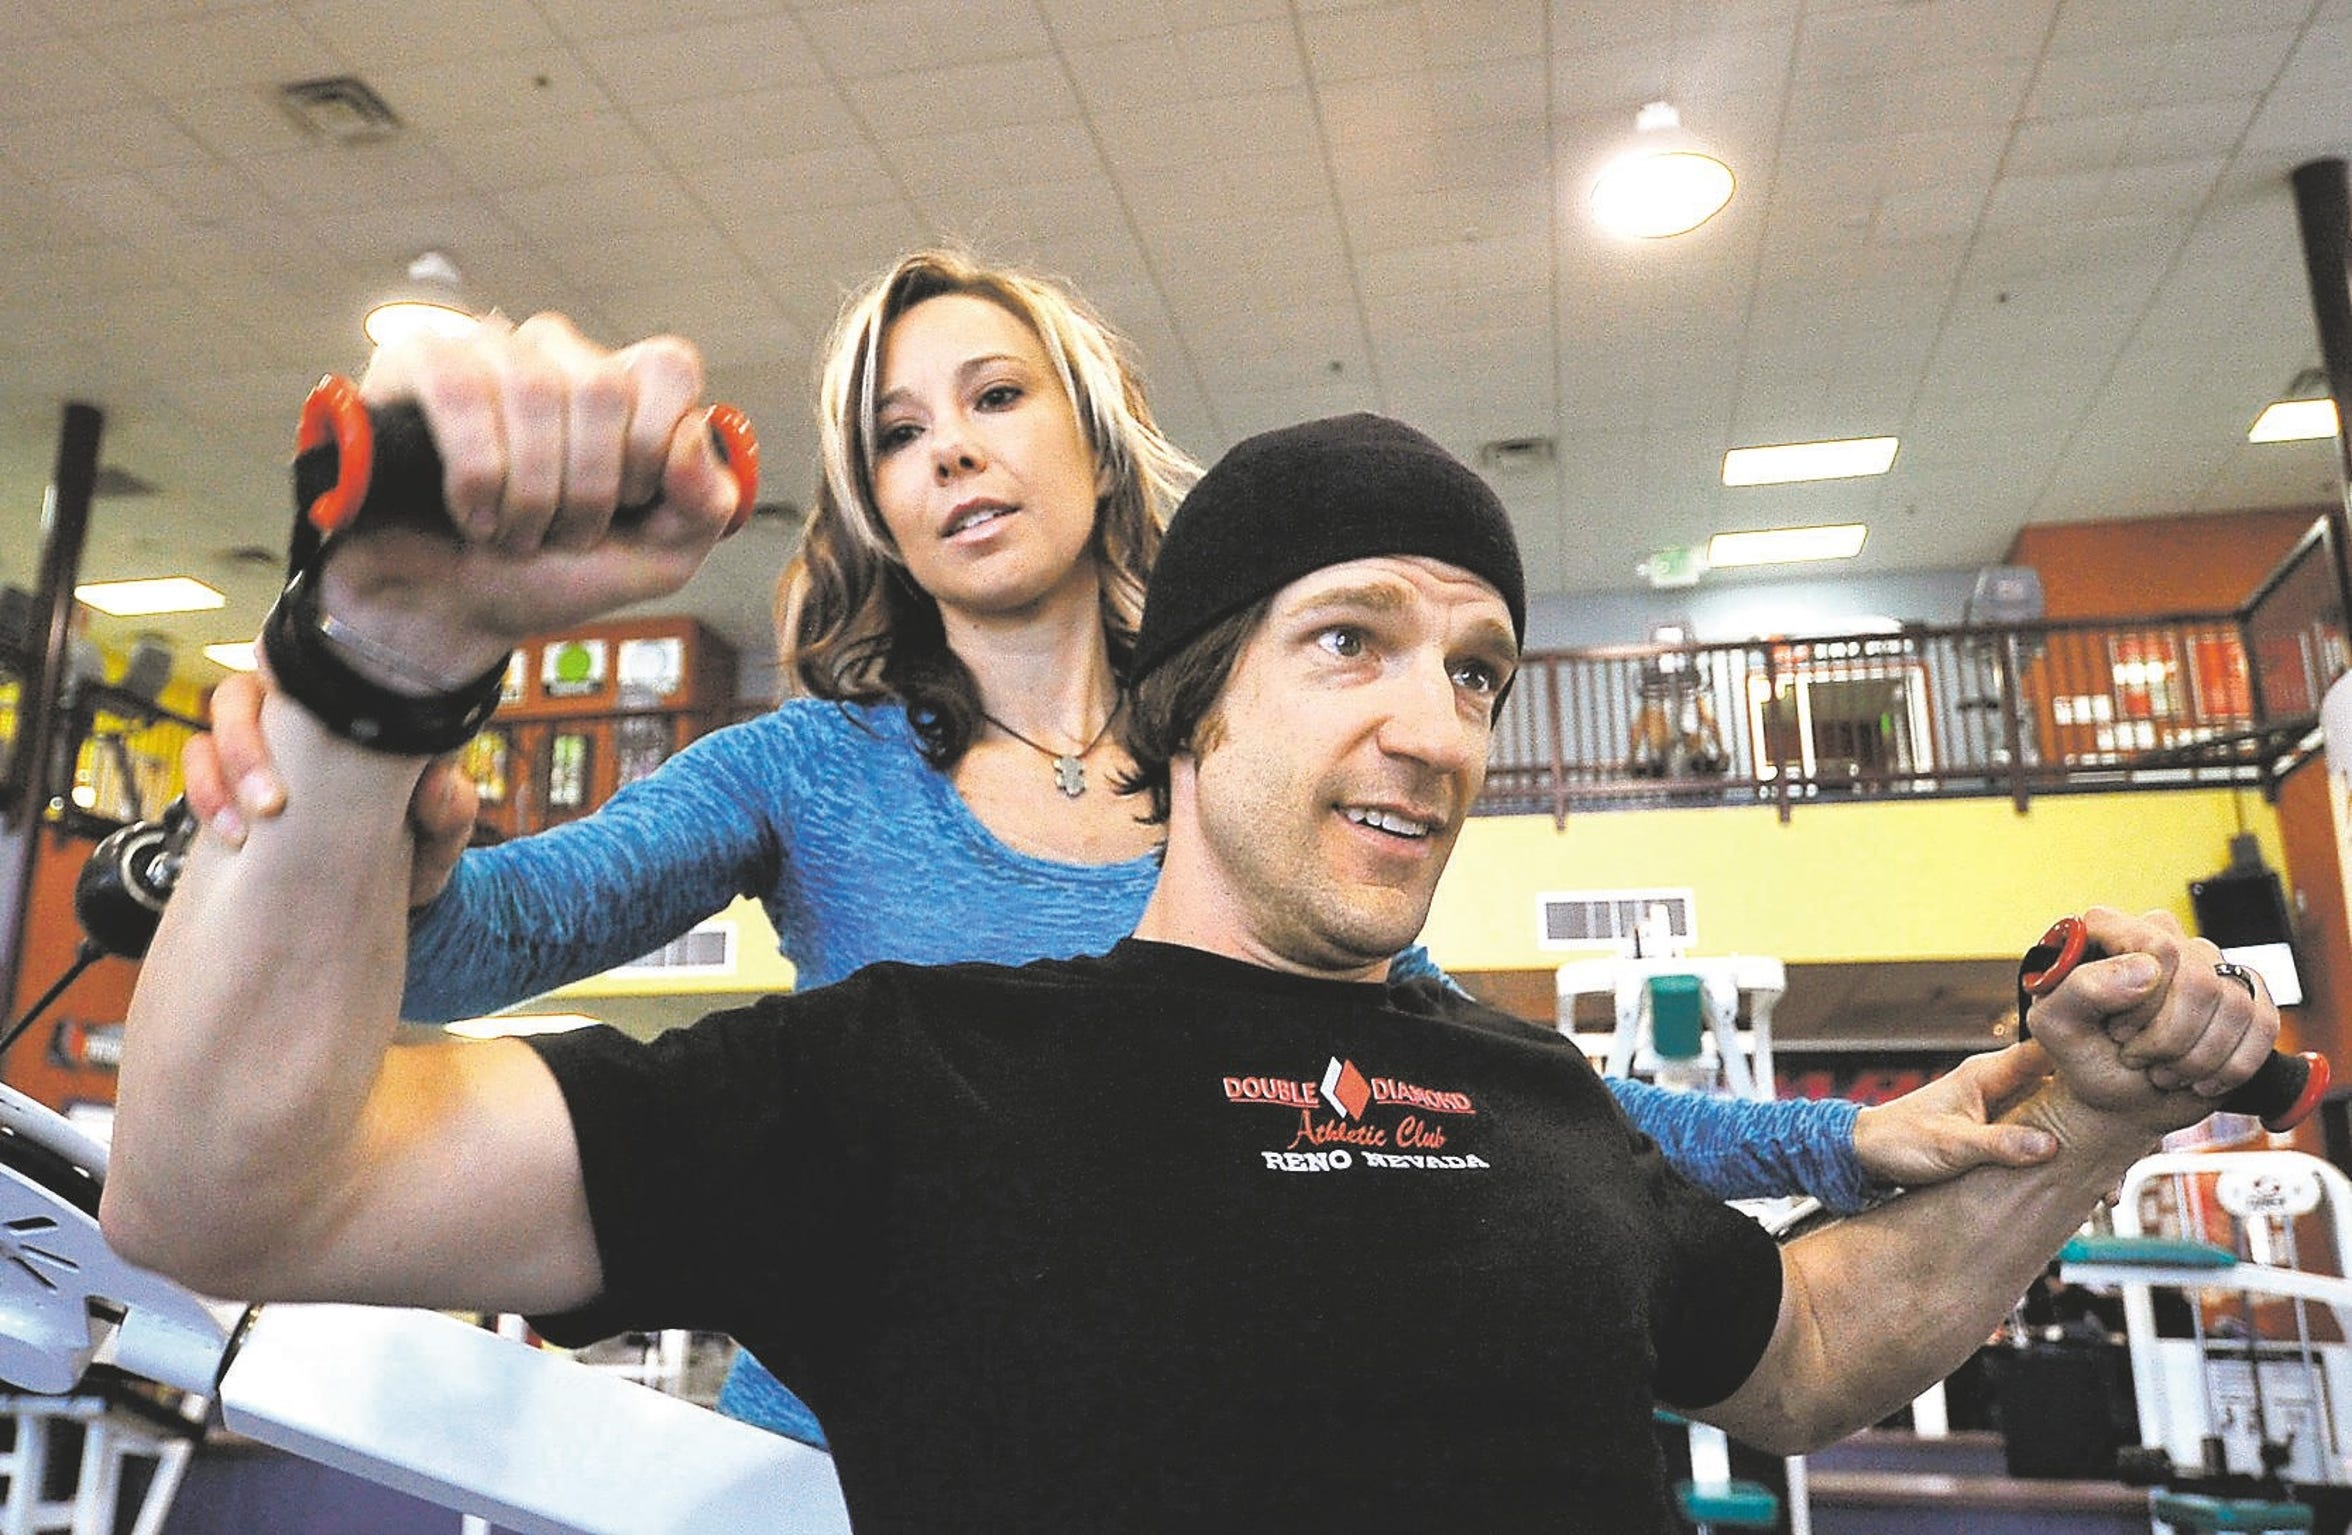 Shawna Korgan helps her husband Grant work on strengthening upper body training at the Double Diamond Athletic Club in 2011.